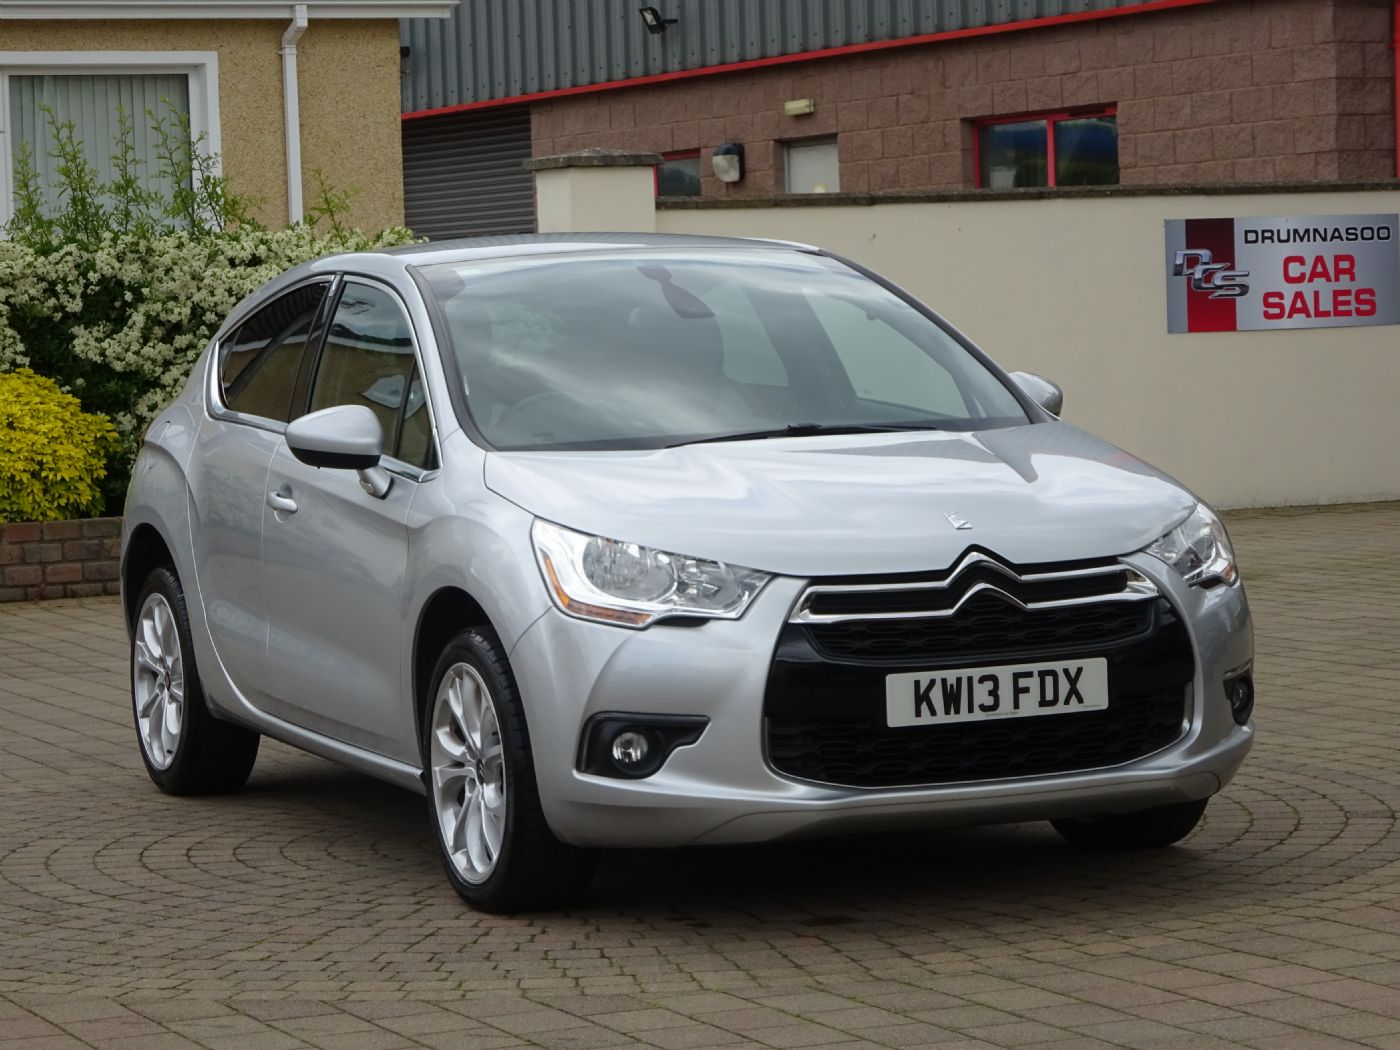 Citroen DS4 Dstyle 1.6 HDI 115